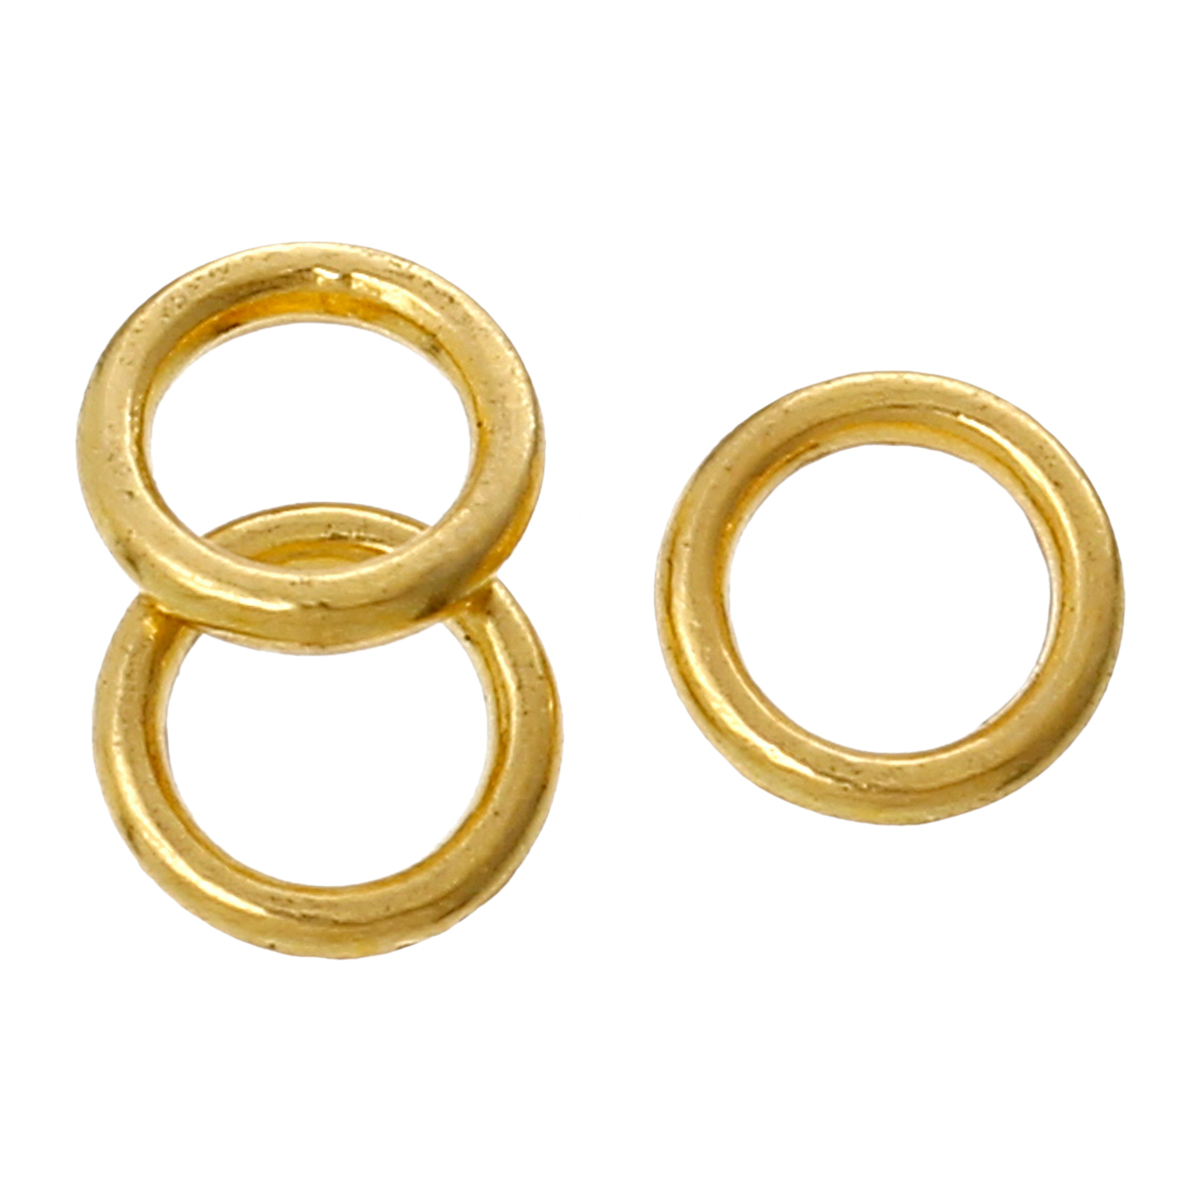 DoreenBeads Zinc metal alloy Closed Soldered Jump Rings Circle Ring Gold Color 6mm( 2/8) Dia, 80 PCs холст 30x40 printio любовь page 4 page 6 page 9 page 7 page 3 page 9 page 4